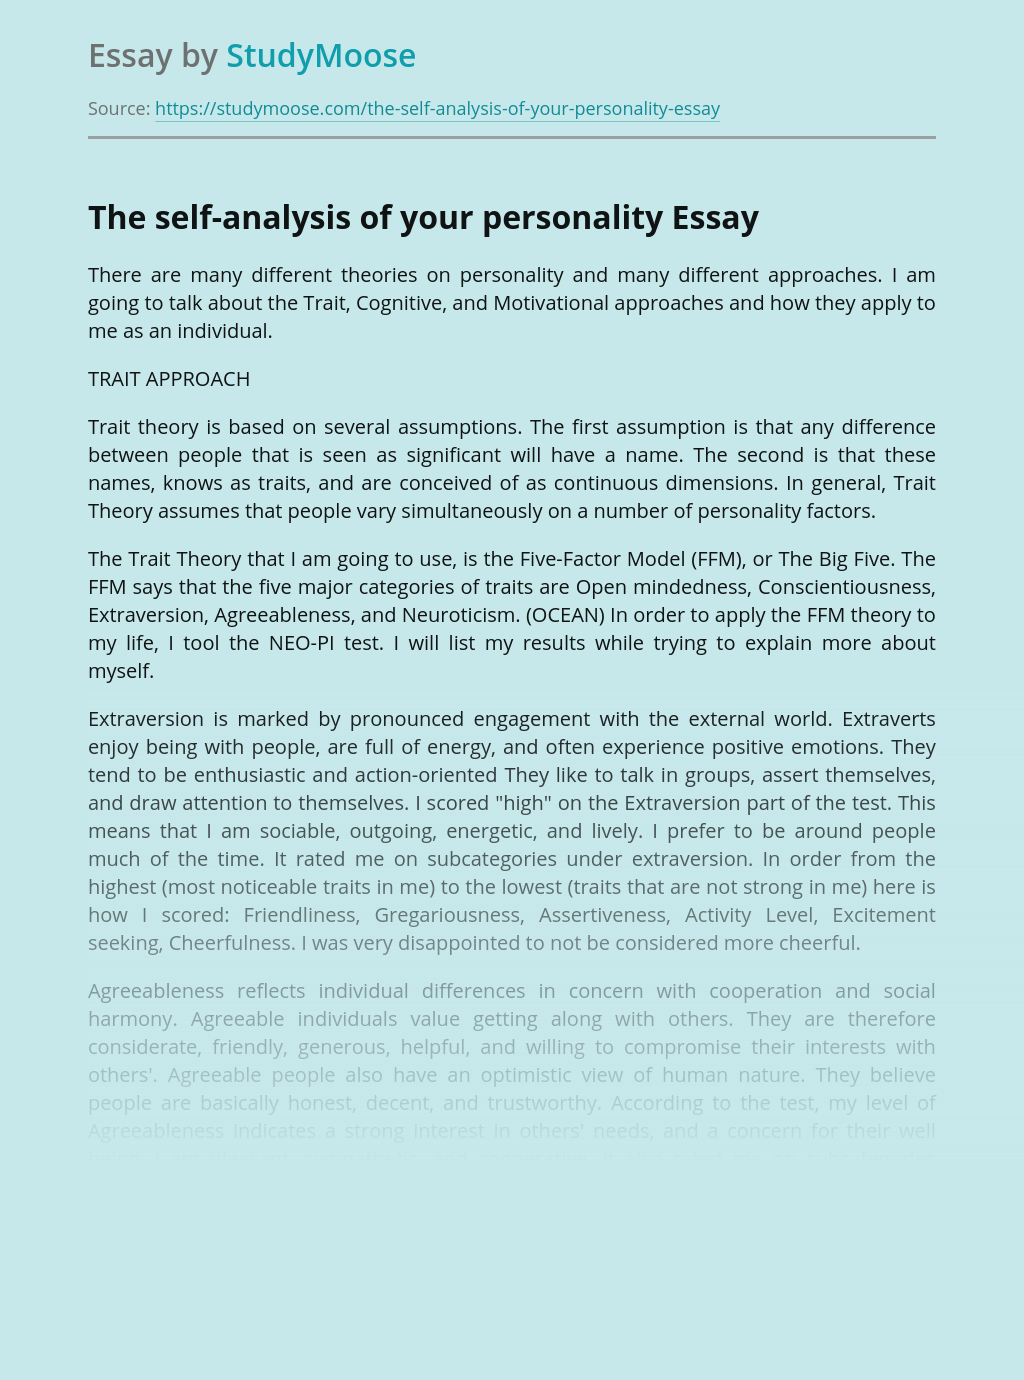 The self-analysis of your personality